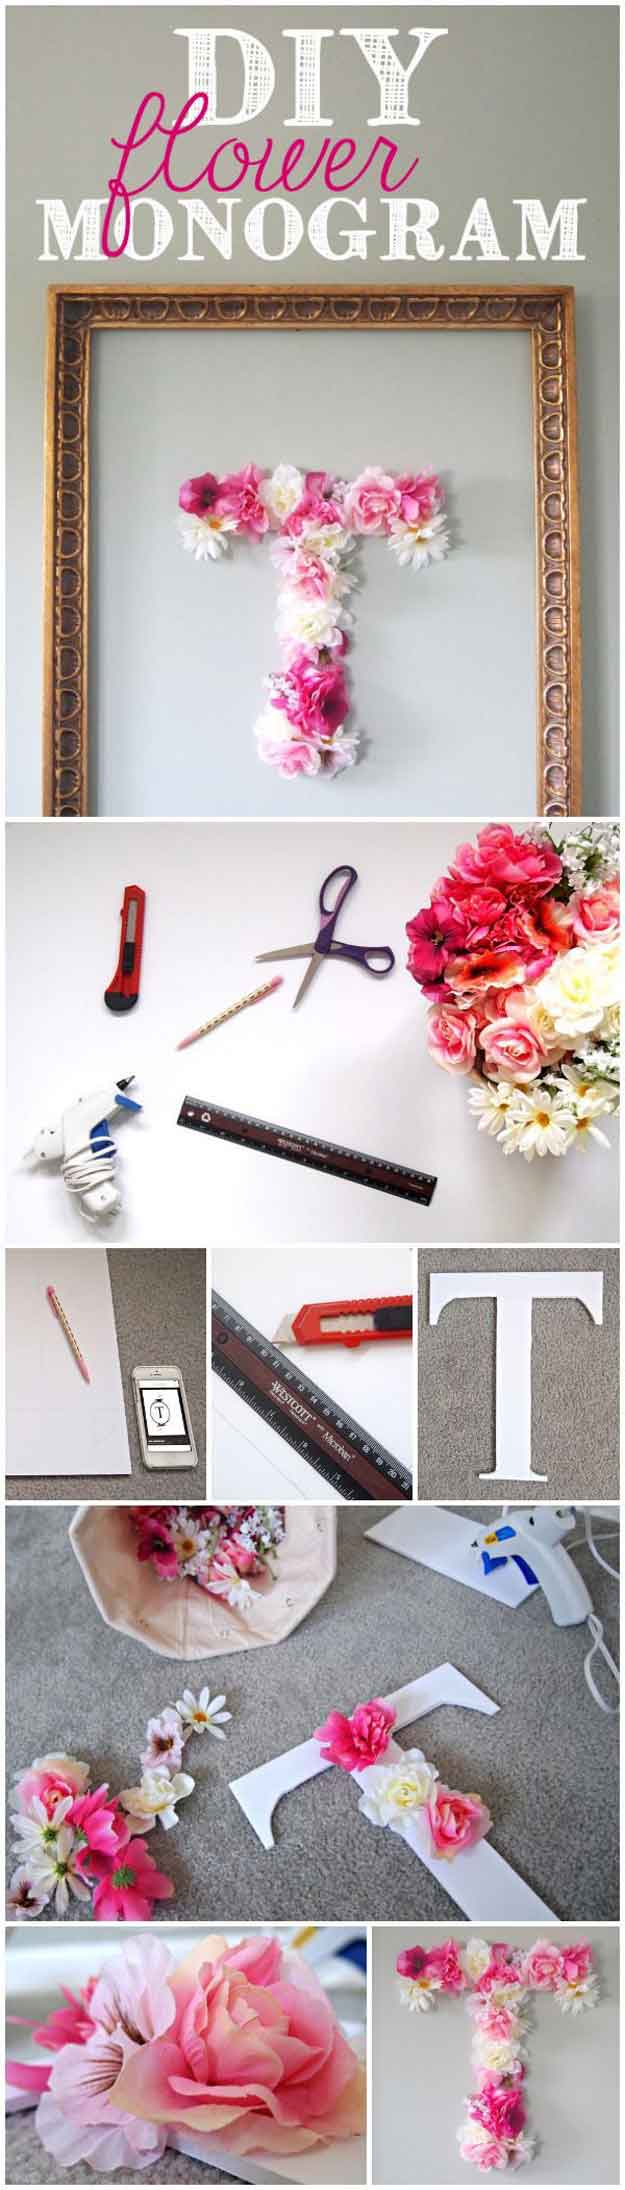 diy decor diy projects for bedroom diy ready